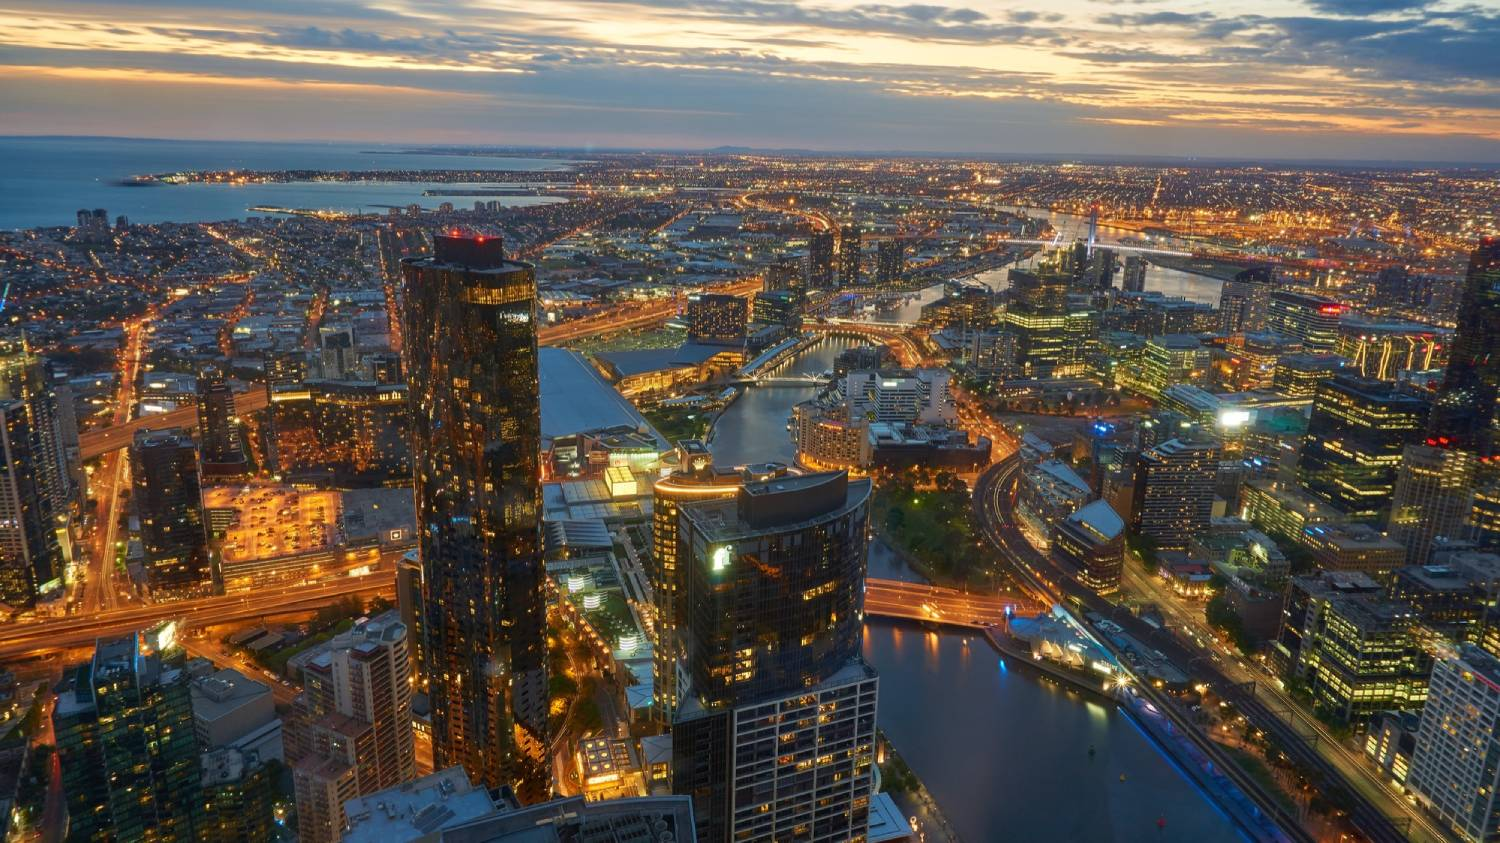 Eureka Skydeck 88 - Things To Do In Melbourne